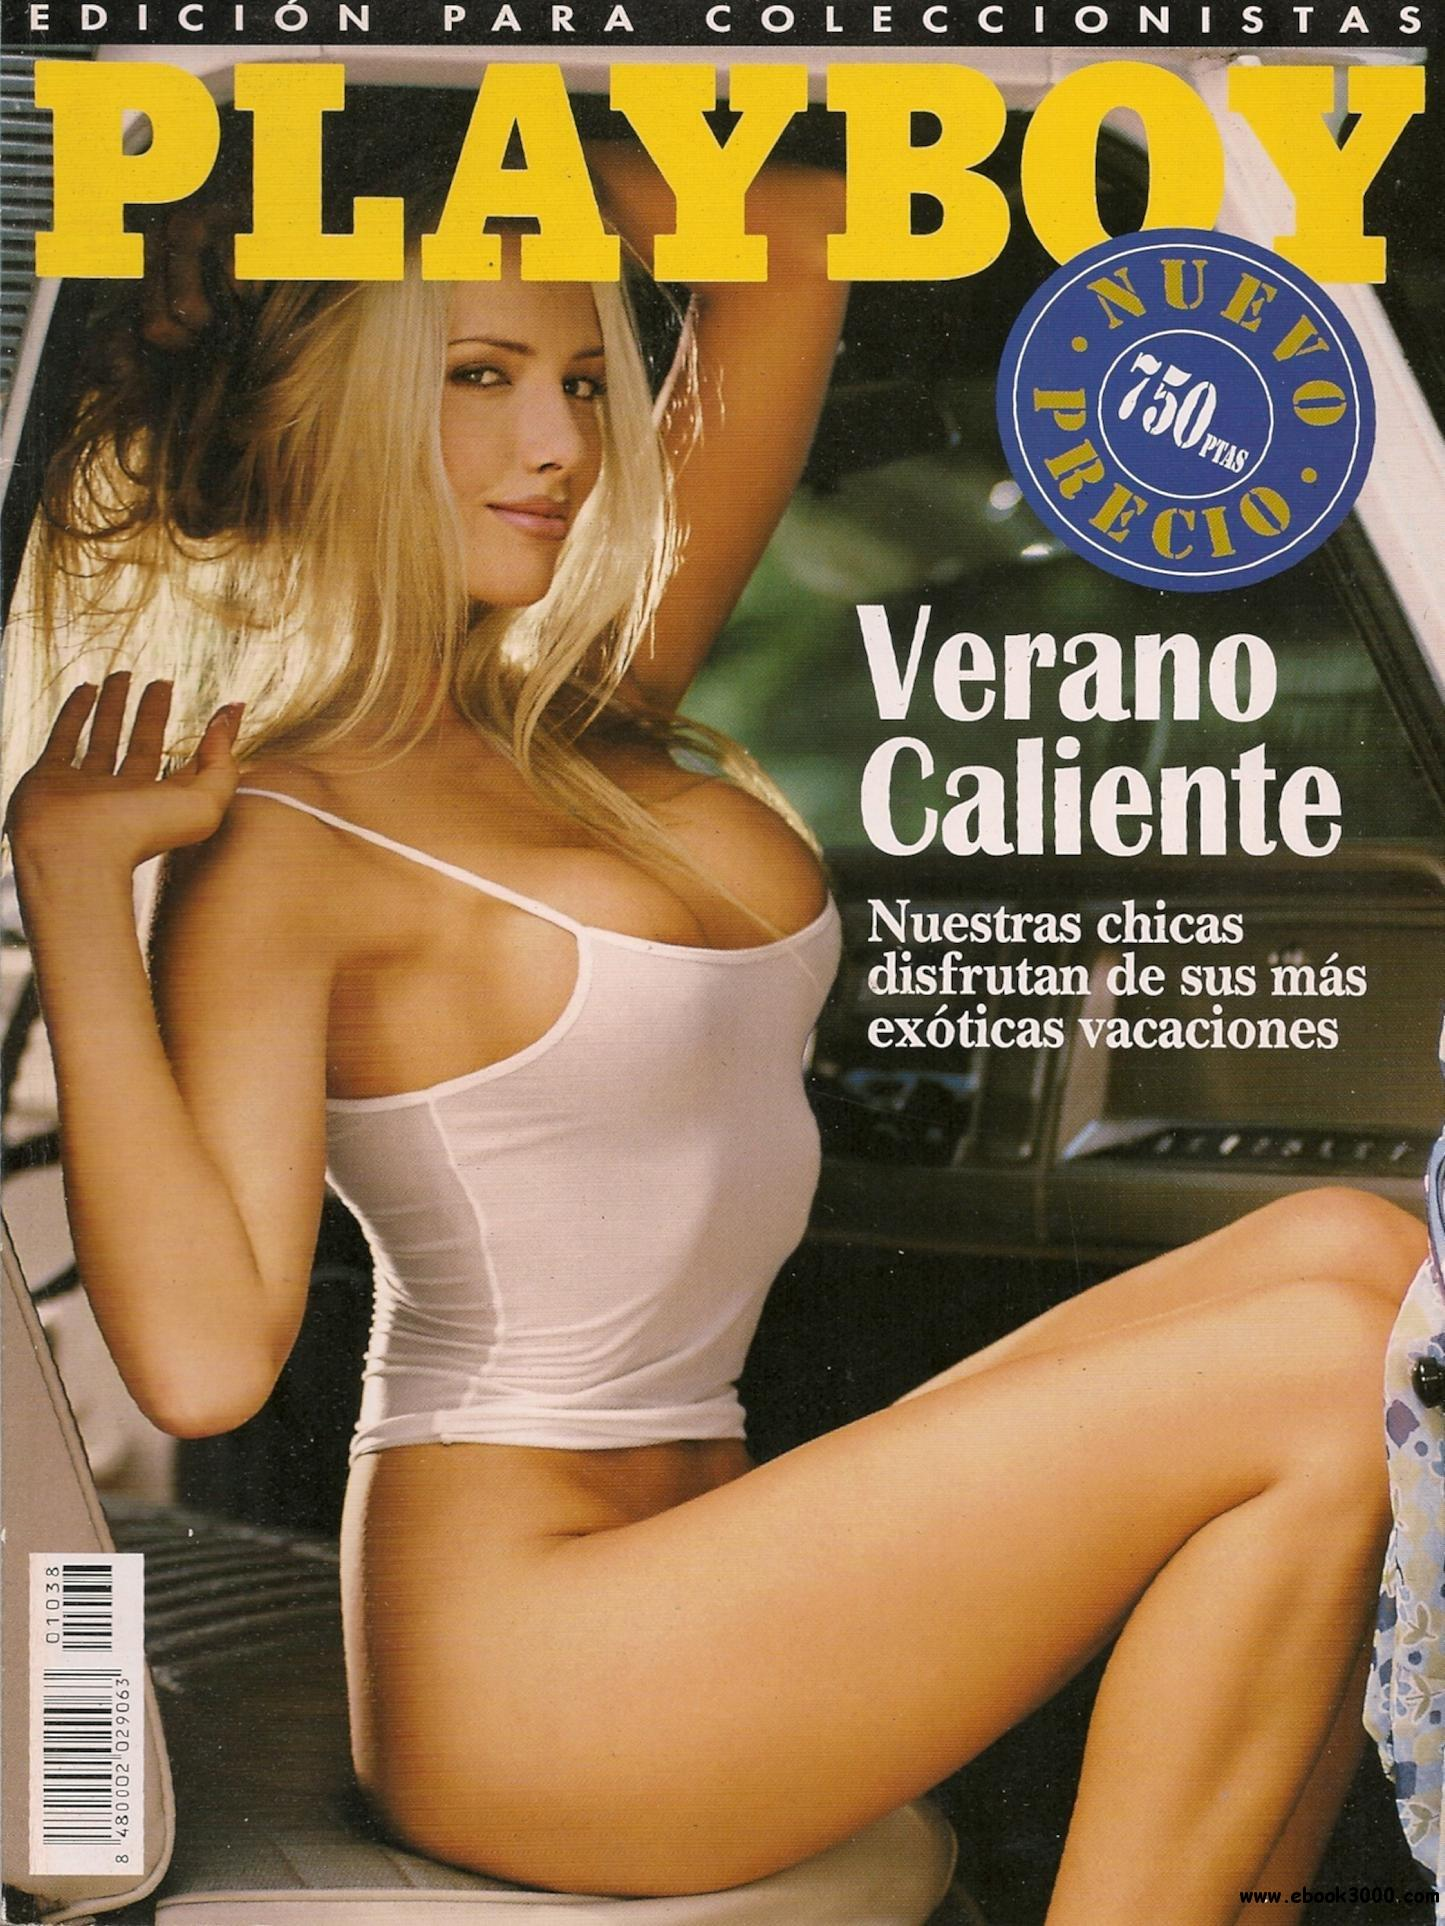 Playboy Spain - Especial Edicion 38 - Verano Caliente download dree